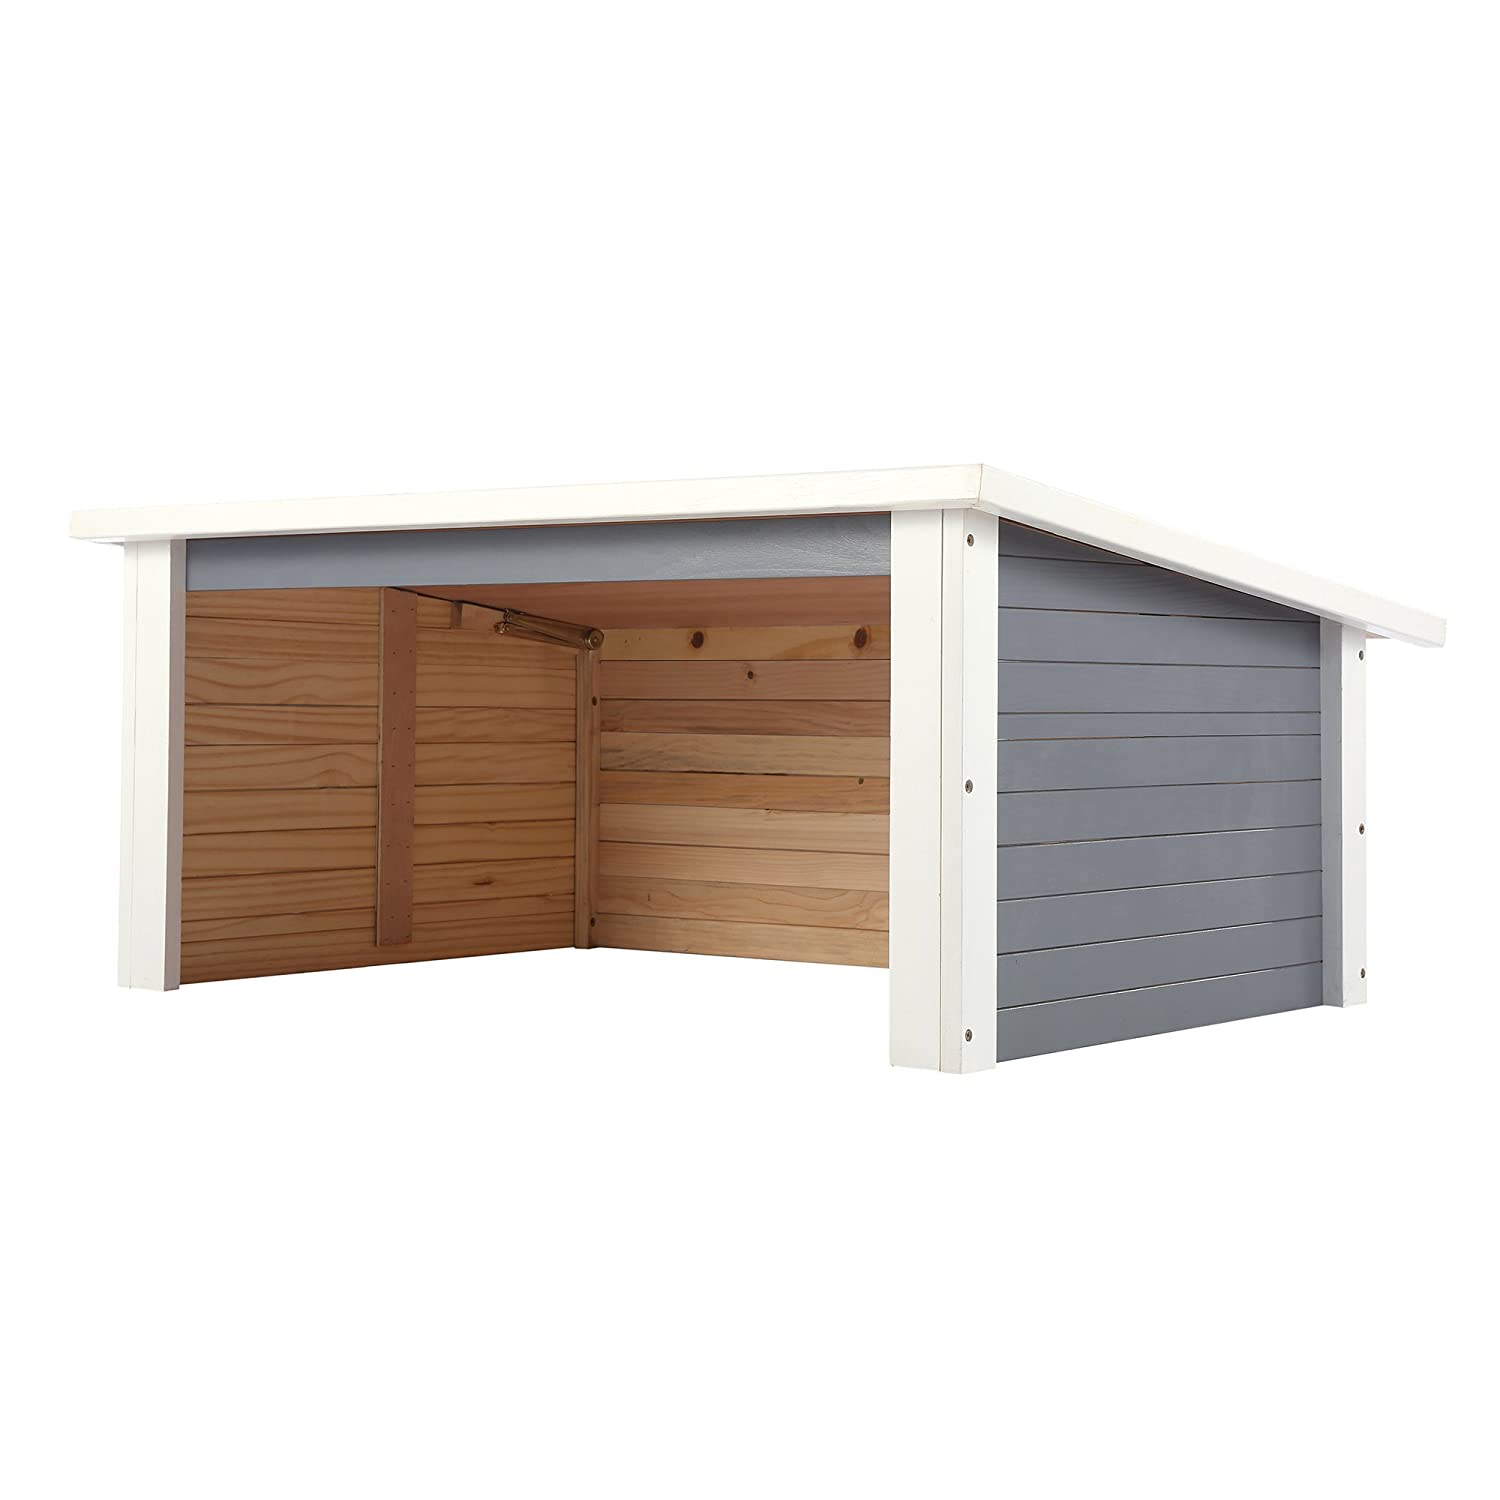 Grey Zelsius Wooden Garage for Lawnmower Robots, Garage made of Wood for Lawnmower Robots, Lawn Mower Robot Garage, Mowing Robot Garage, Carport for Lawn Robot, grey